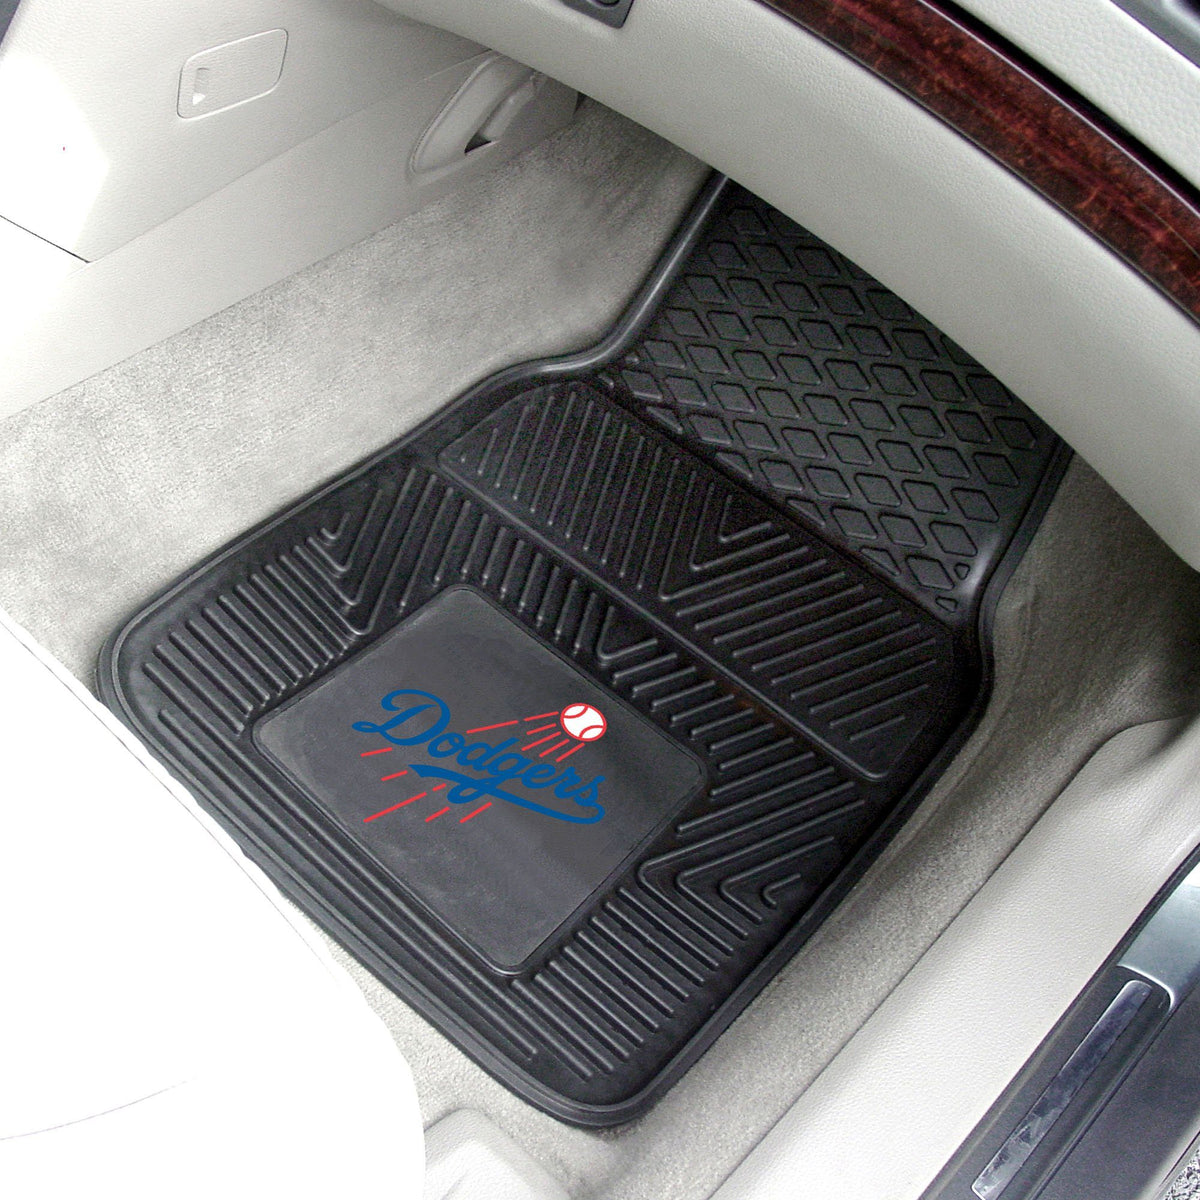 MLB - Vinyl Car Mat, 2-Piece Set MLB Mats, Front Car Mats, 2-pc Vinyl Car Mat Set, MLB, Auto Fan Mats Los Angeles Dodgers